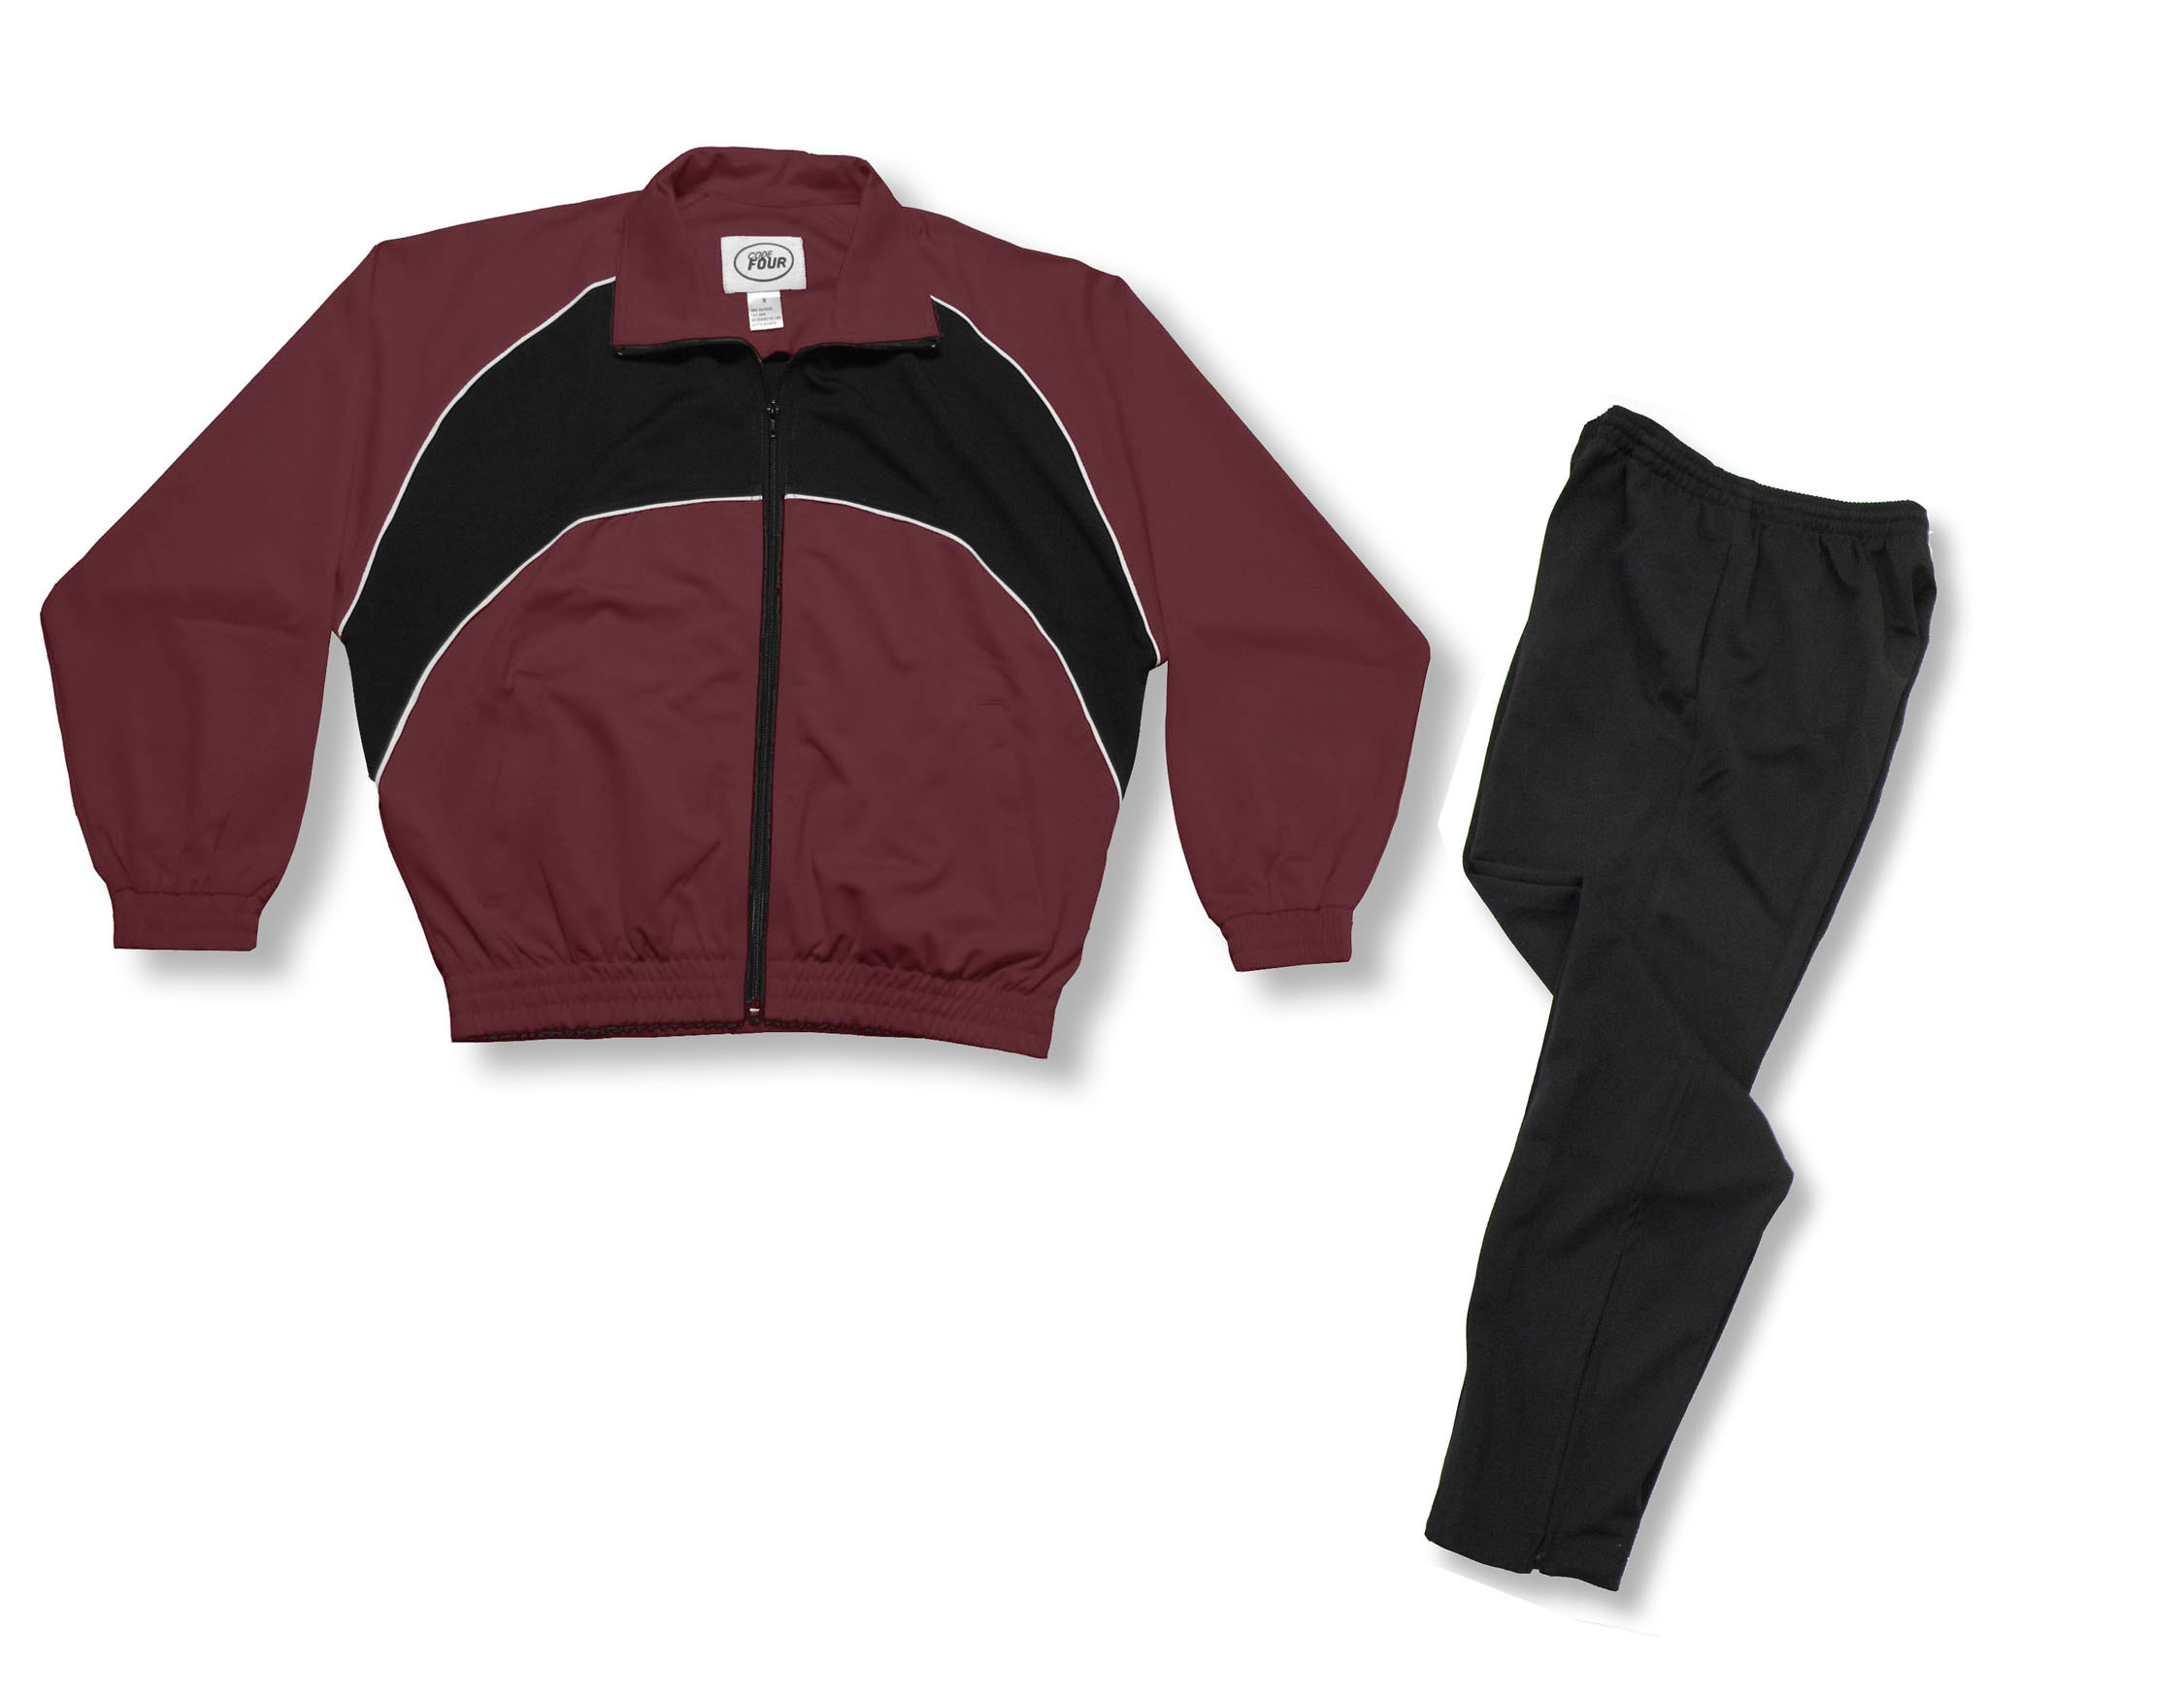 Crossfire Primo soccer warmup set in maroon by Code Four Athletisc